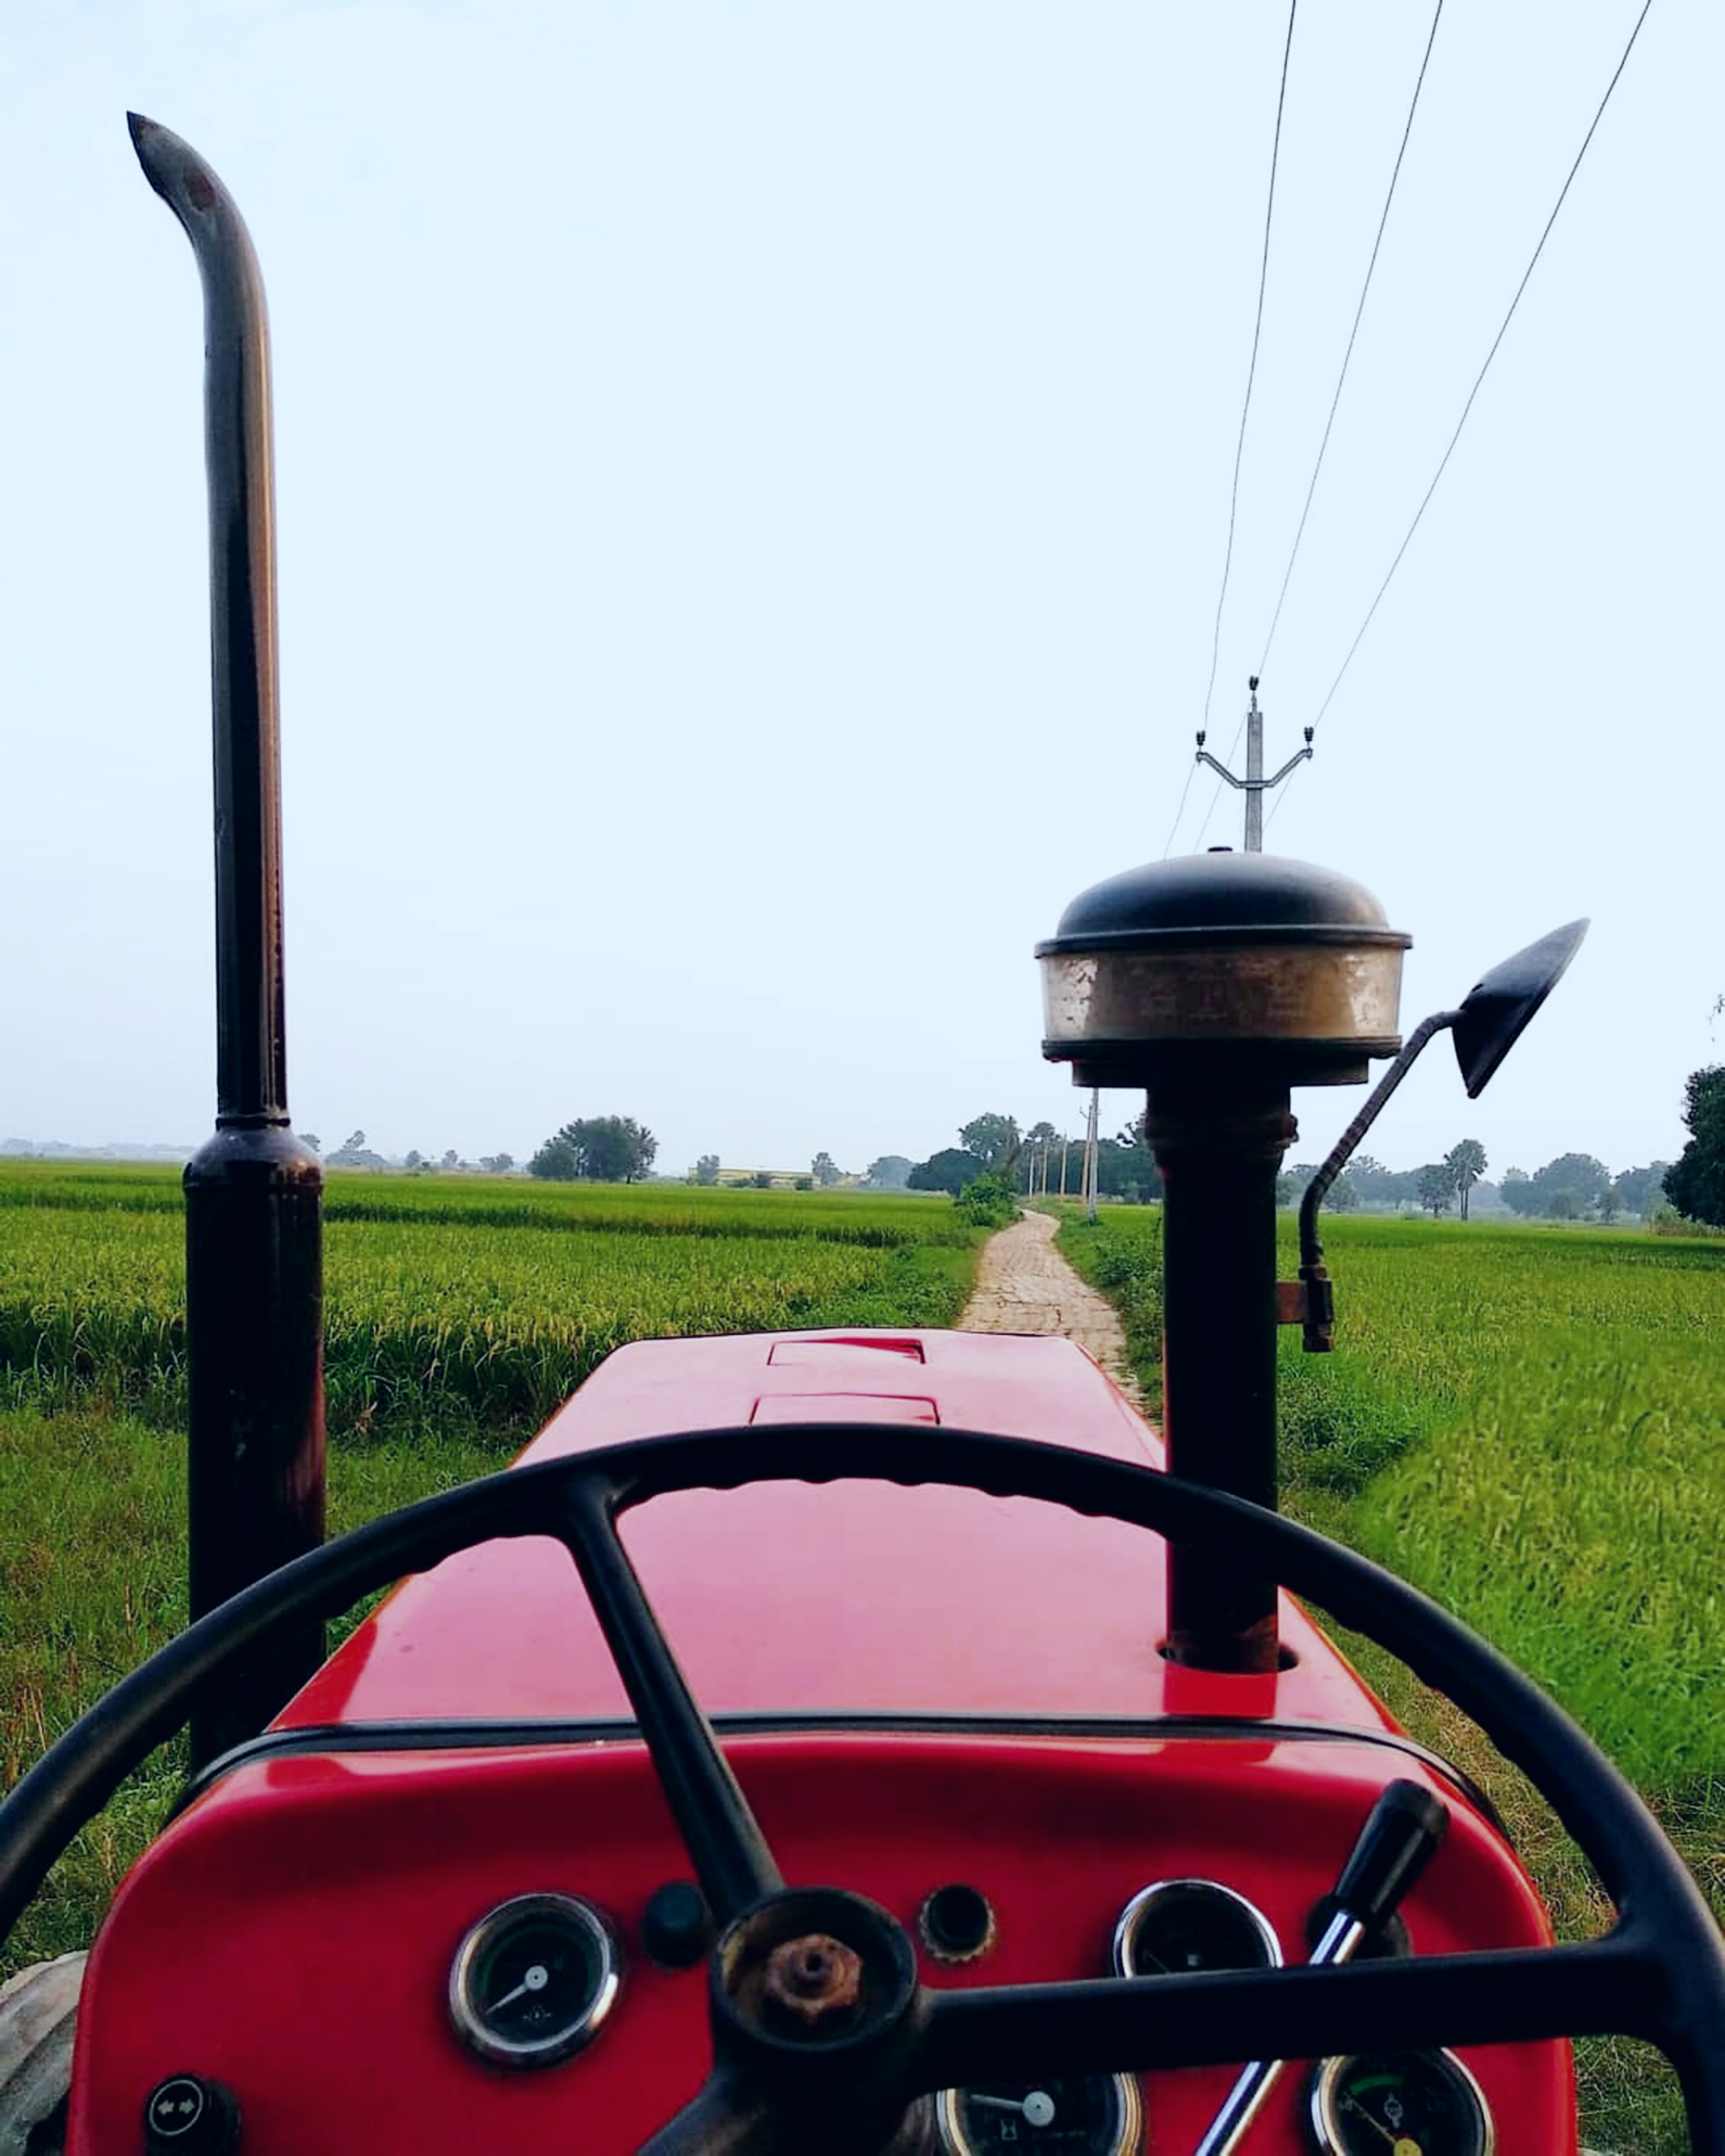 A tractor in the farm